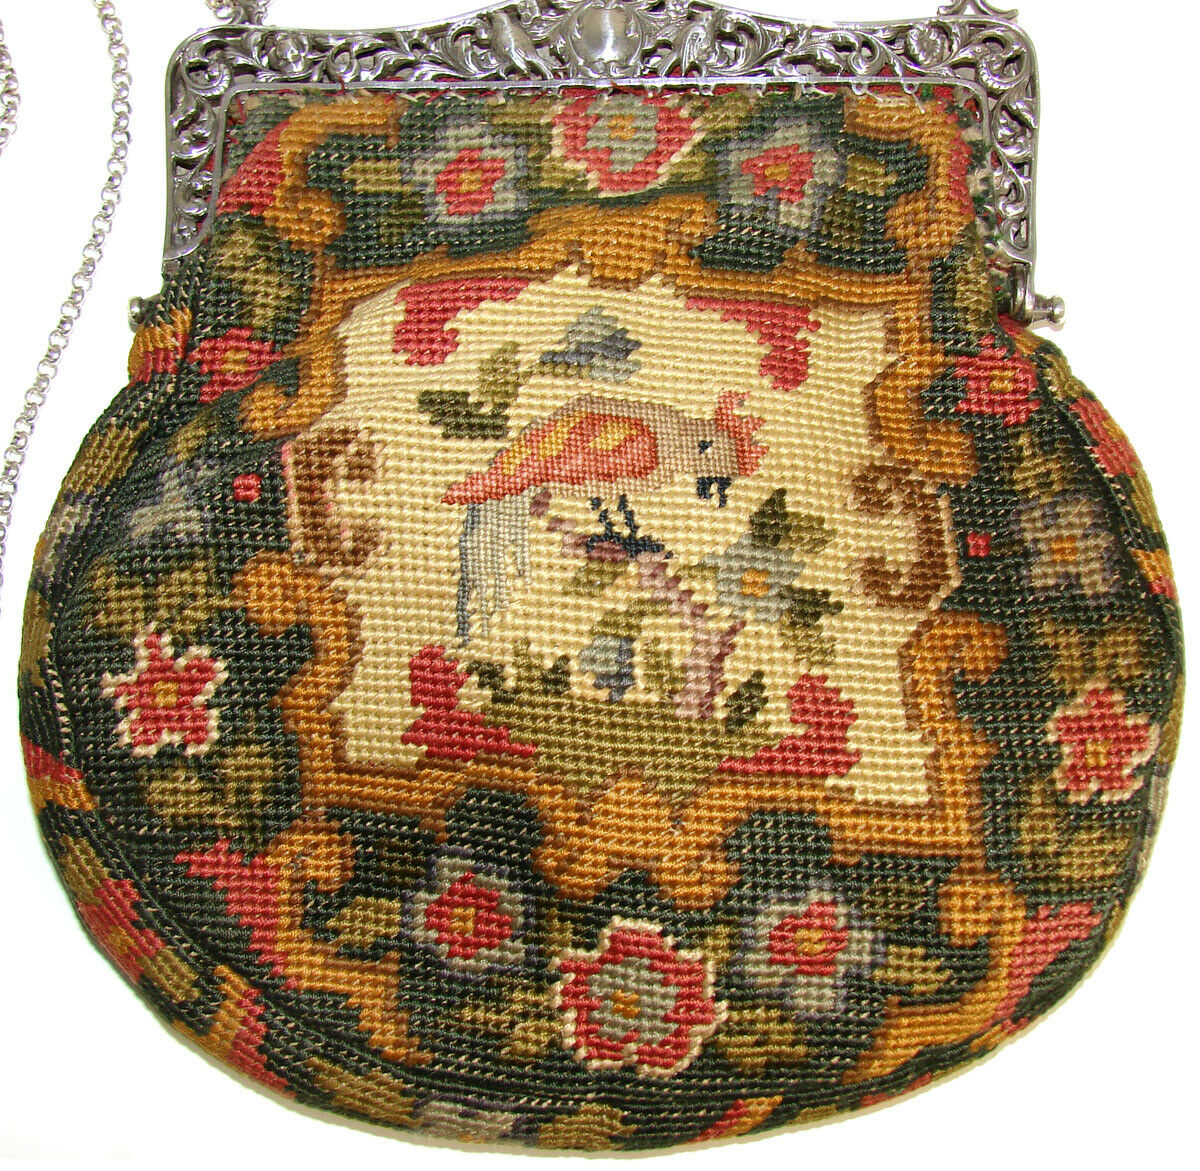 FAB Vintage 1928 Hallmarked Silver & Figural Needlepoint Purse, Hand Bag, Crown